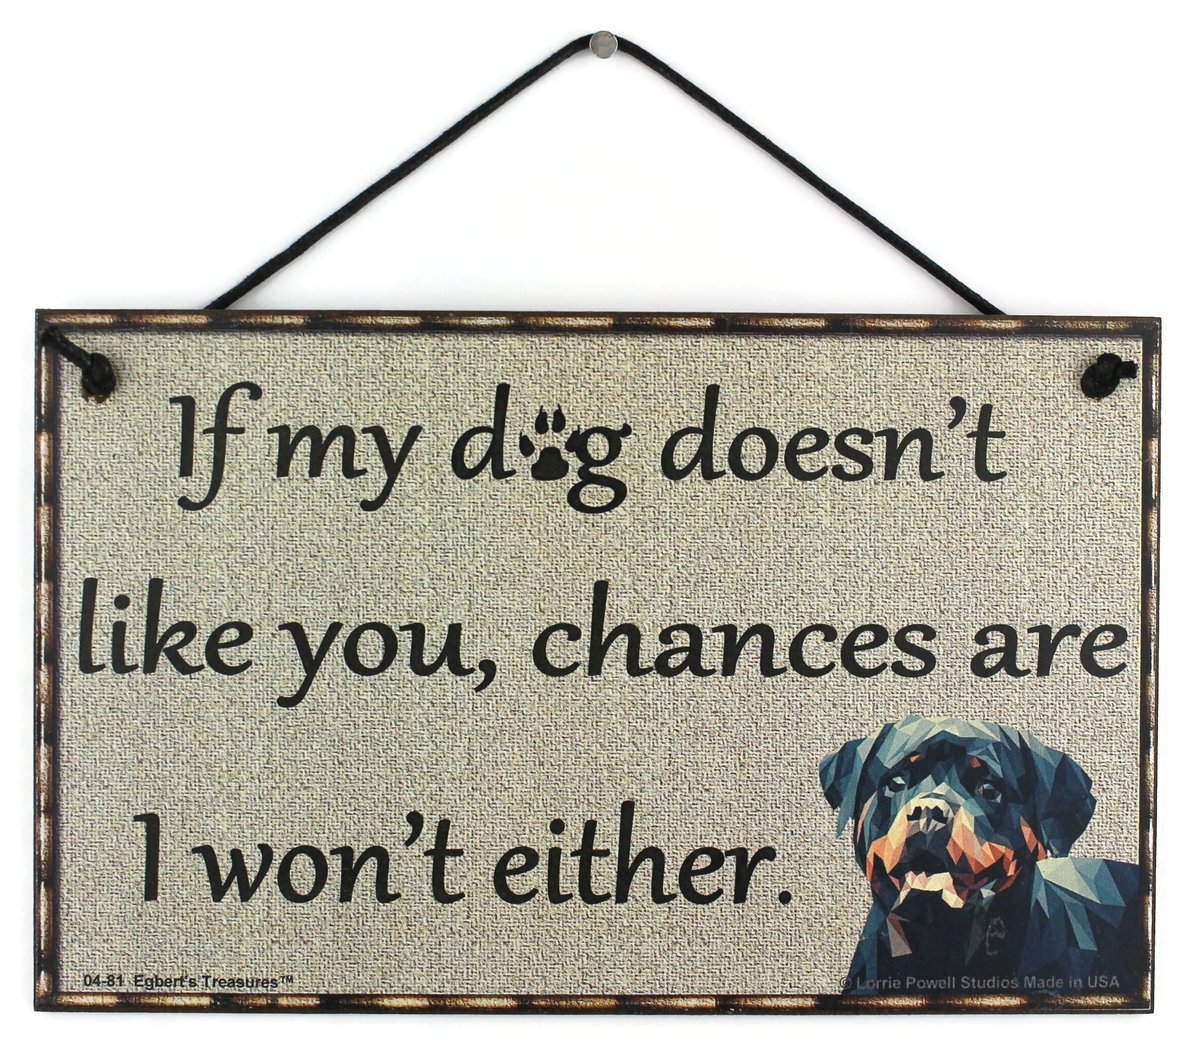 If my dog doesn't like you.. chances are I won't either.    Sign Here:  https://t.co/agmIeGLcAQ  #Dogs #Animals #Pets #BeNice #WelcomeSigns #Welcome #UniqueSigns #Doggies #Puppies #Puppy #Greeter #Gifts #GiftIdeas #Paws #Weekend #Mailman #MailmanGreeter #EgbertsTreasures https://t.co/f9Iubp0uCX